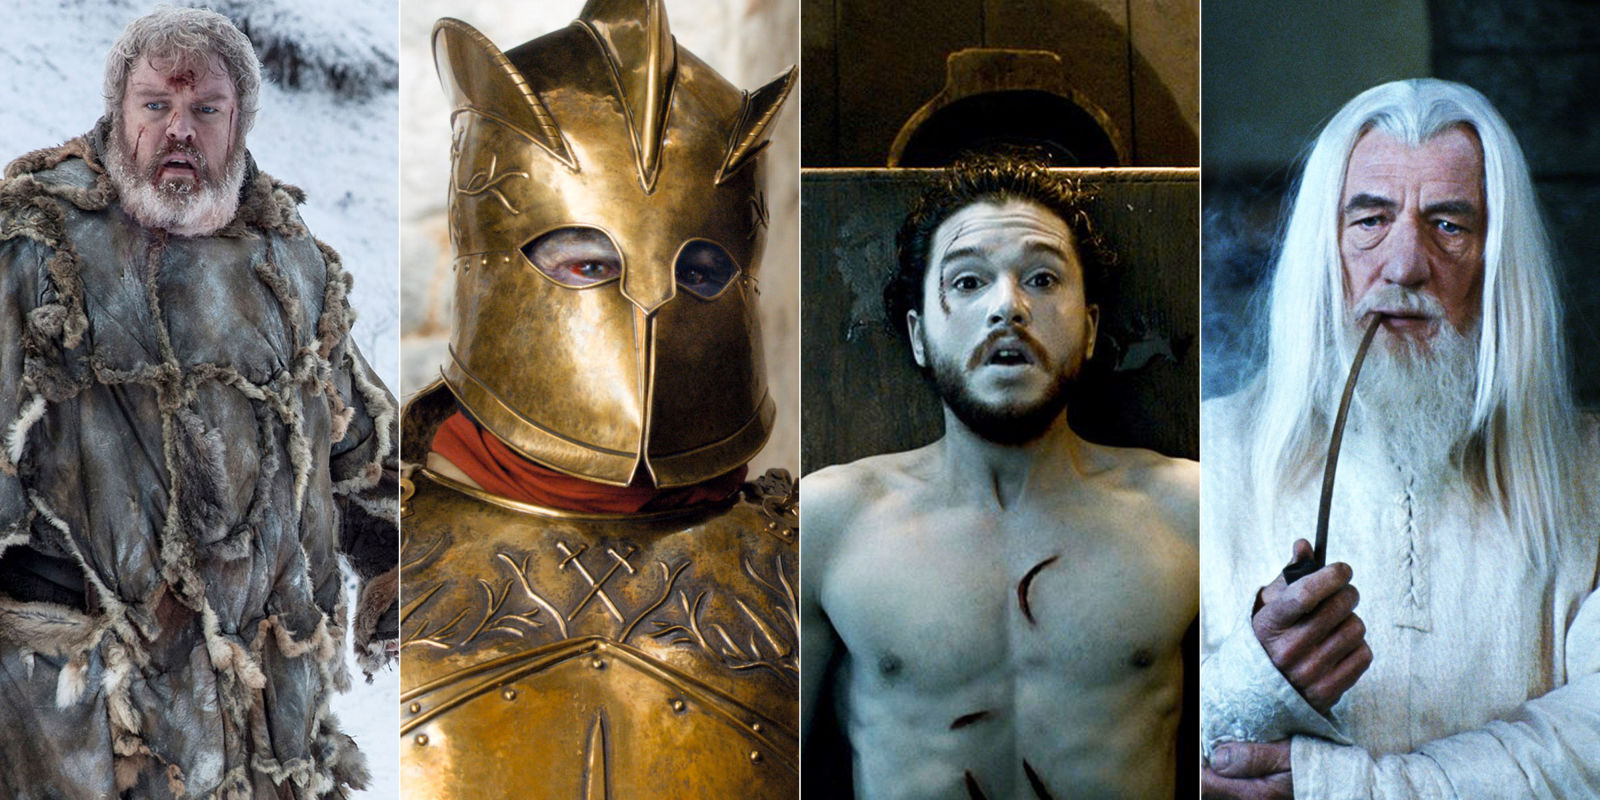 The biggest Game of Thrones fan theories swirling around the internet right now